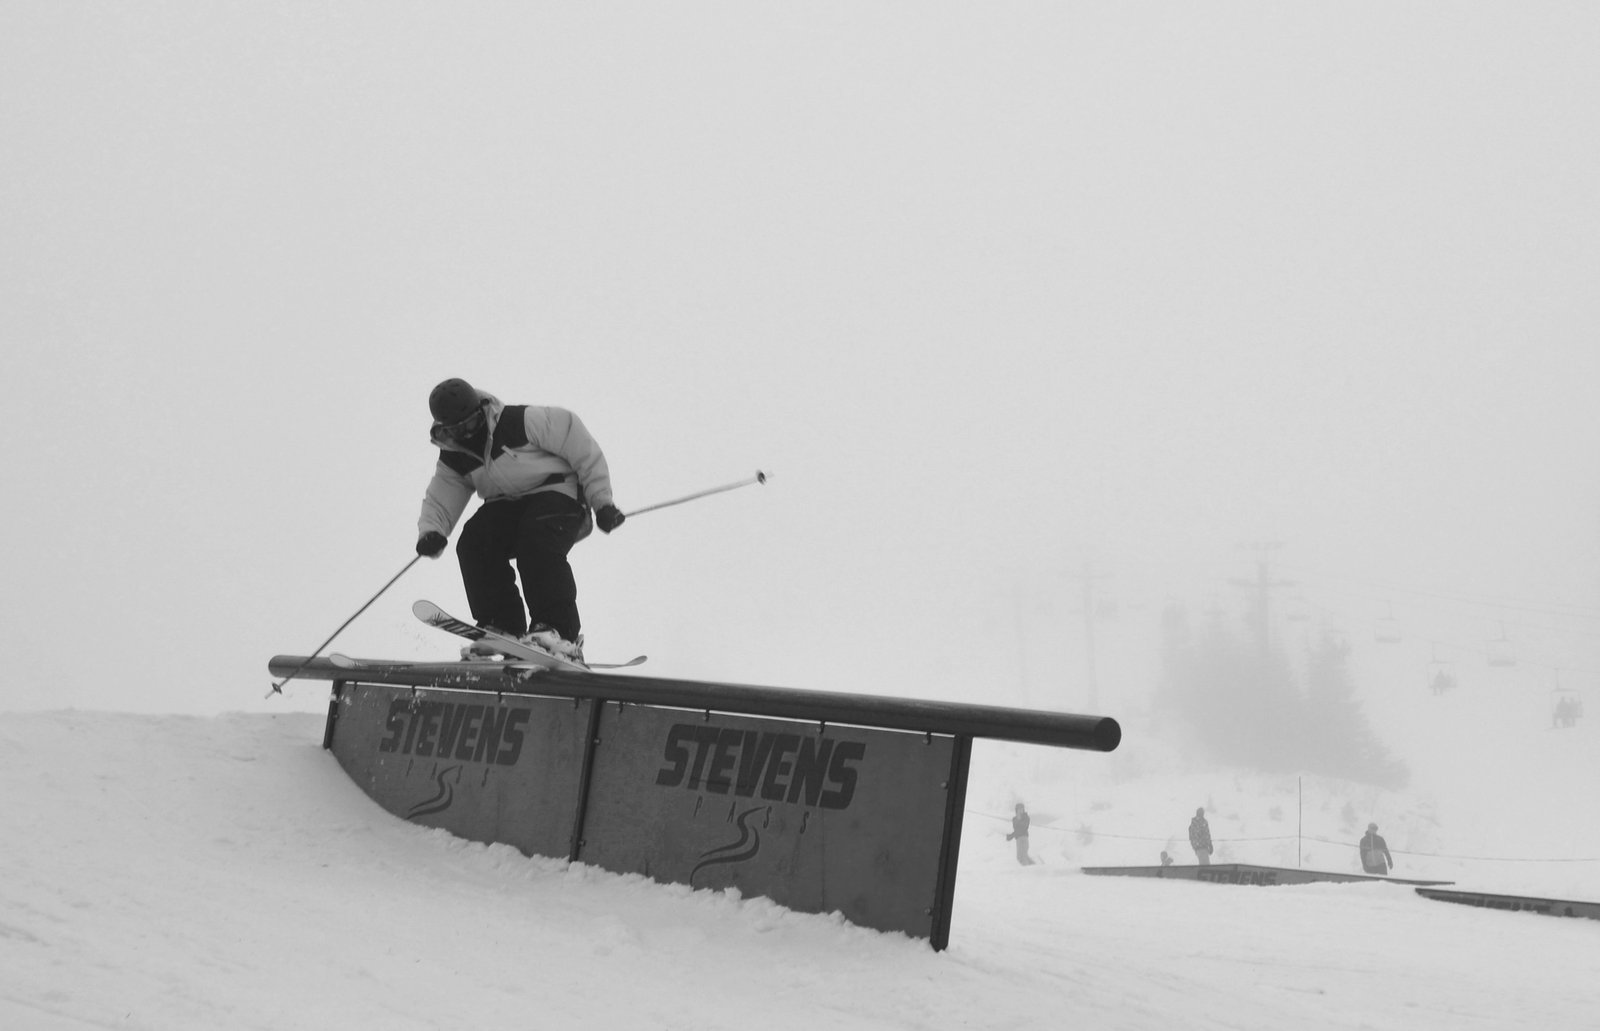 early season stevens pass